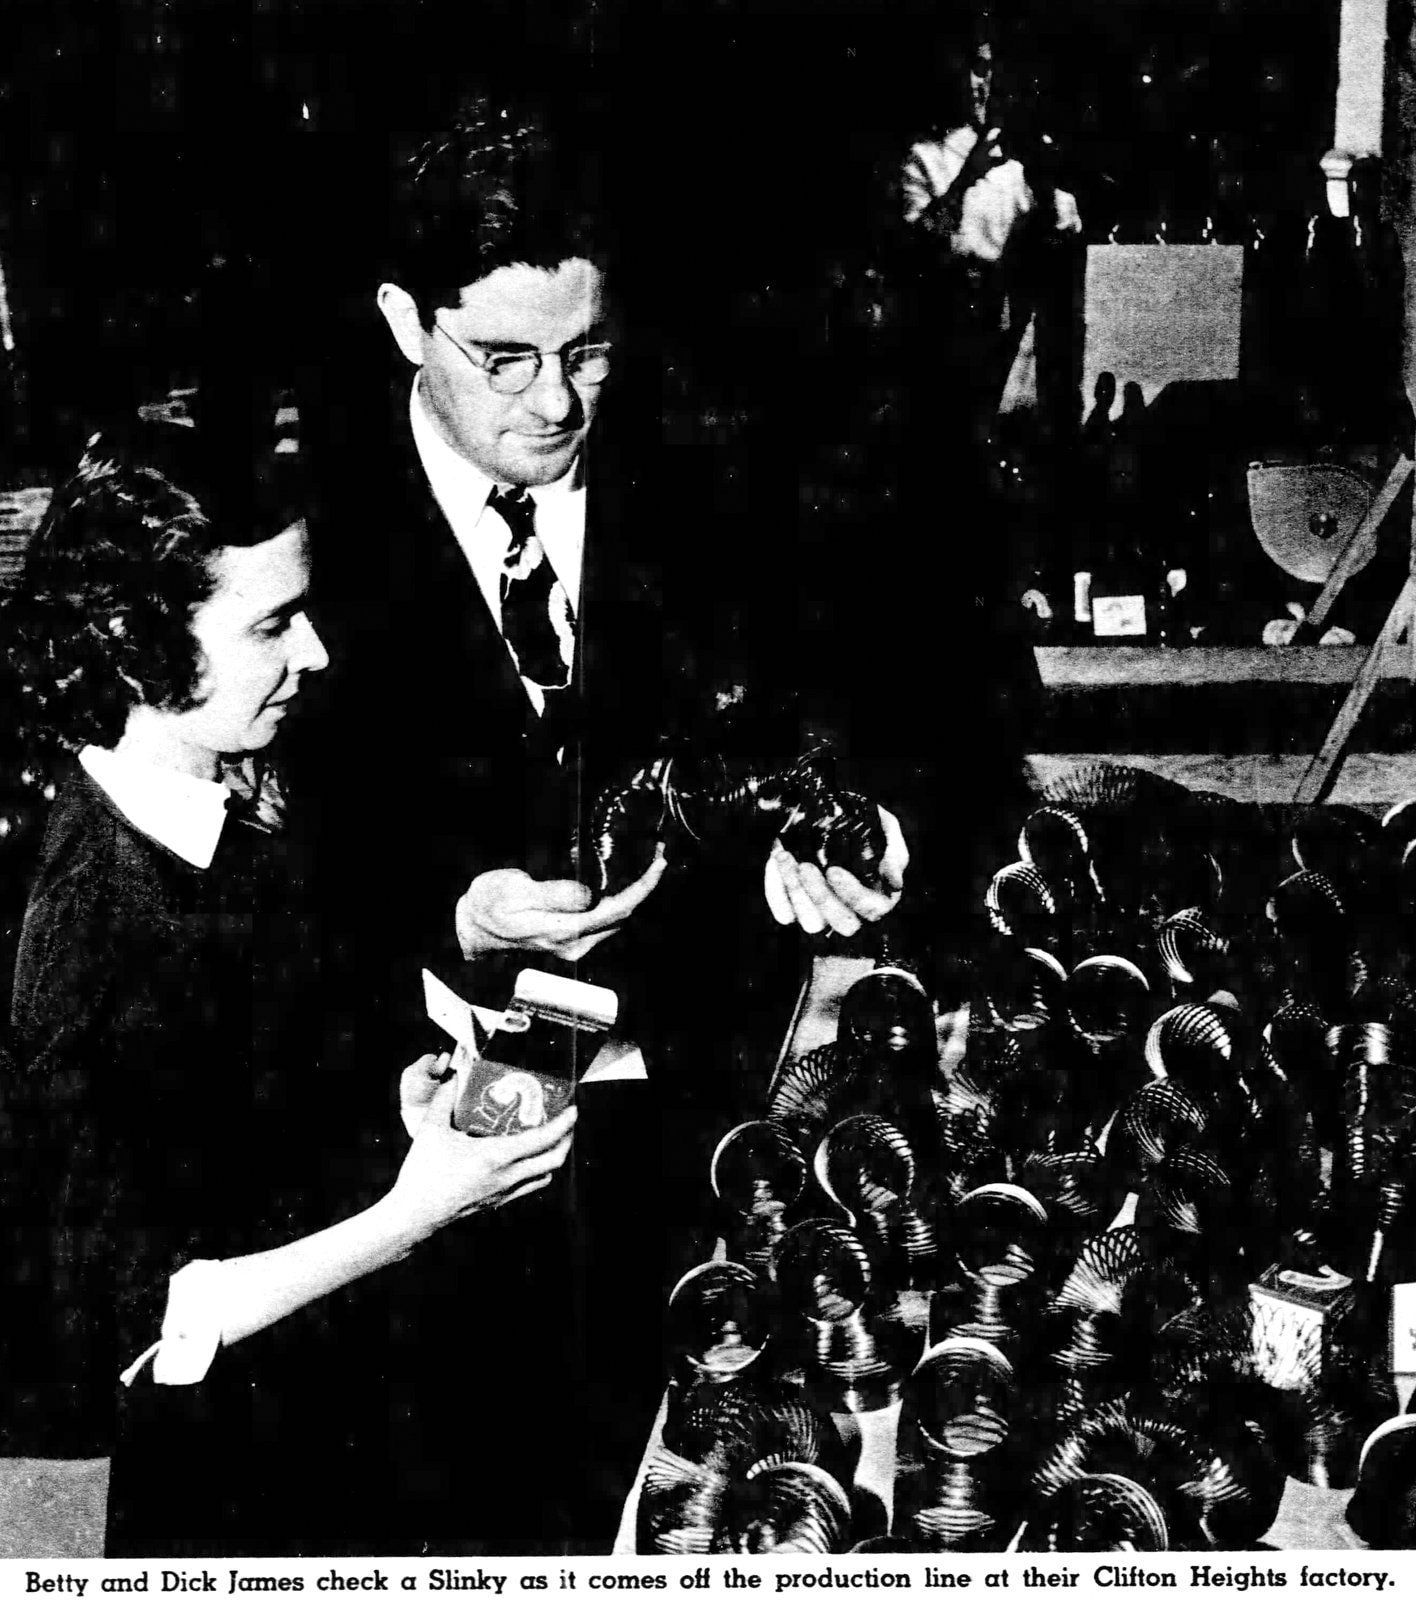 Slinky inventor Dick James and wife (1950)